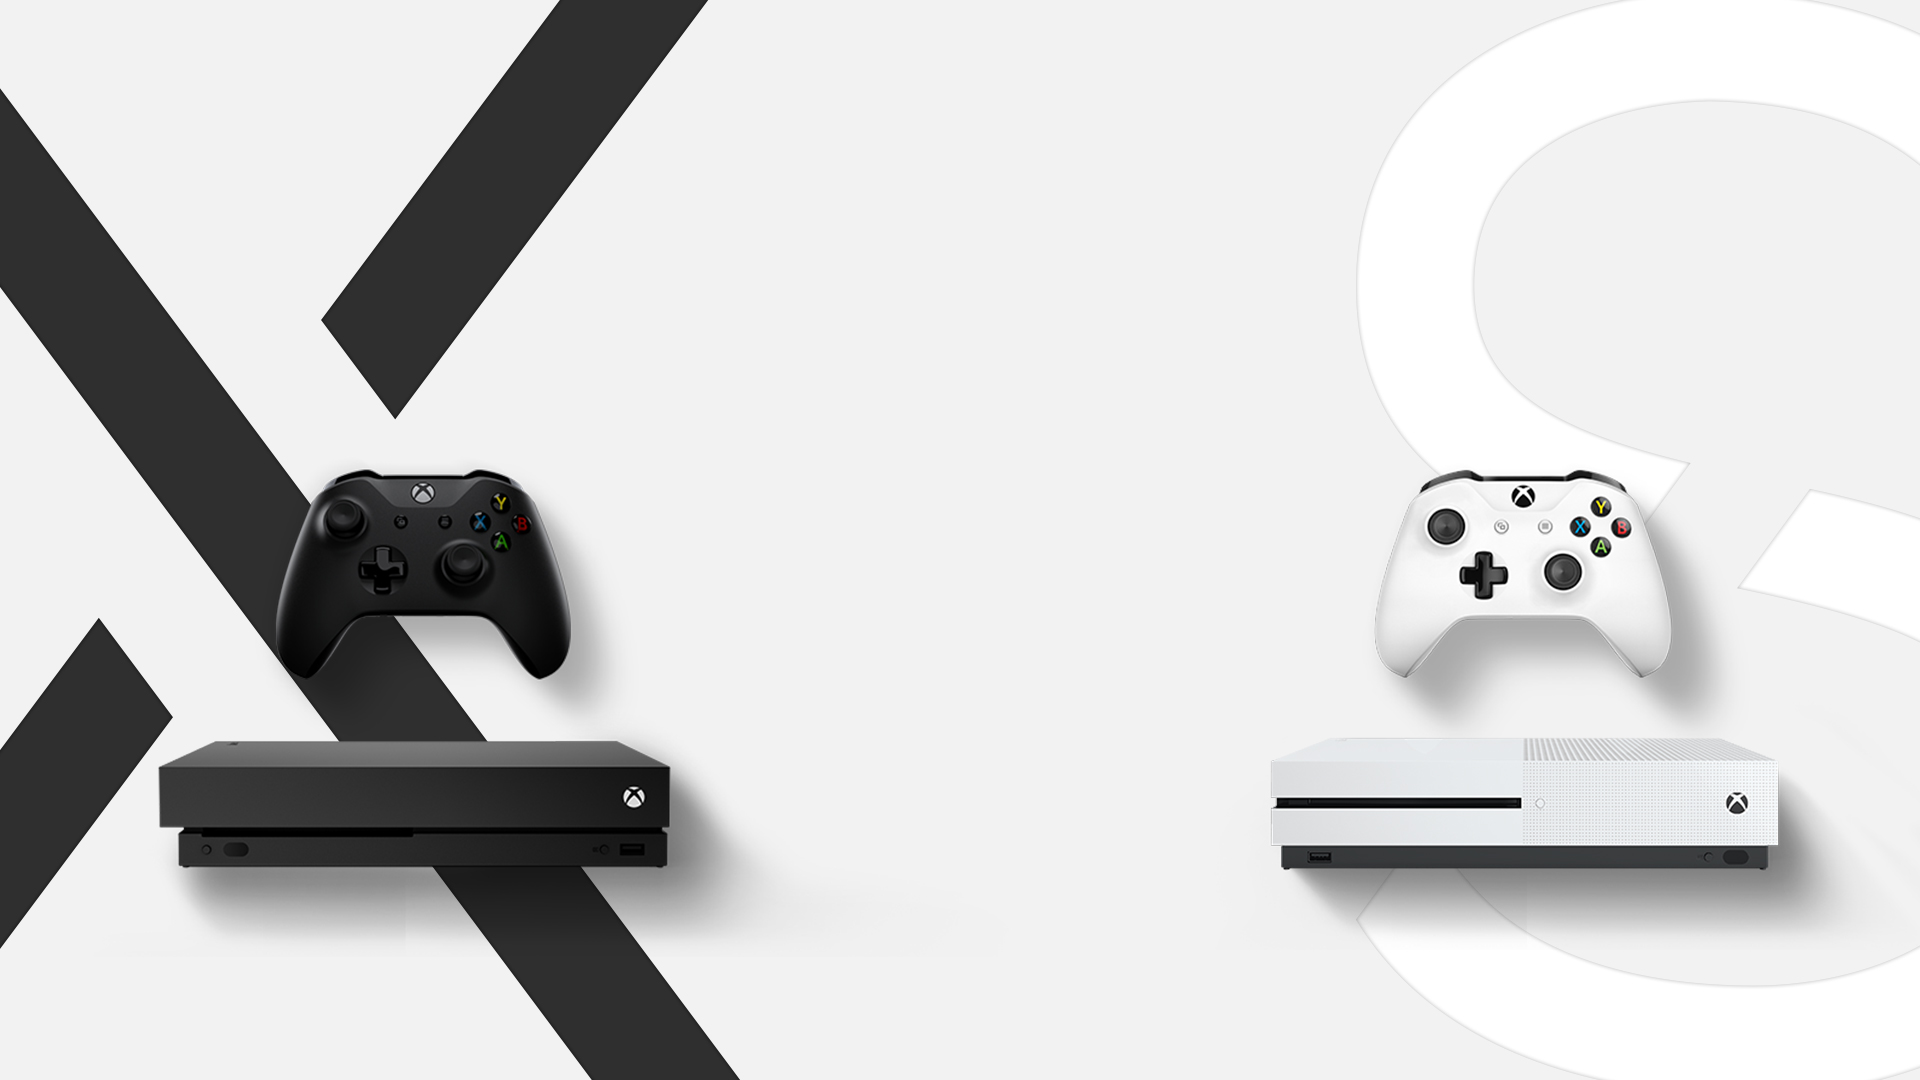 Xbox gaming consoles